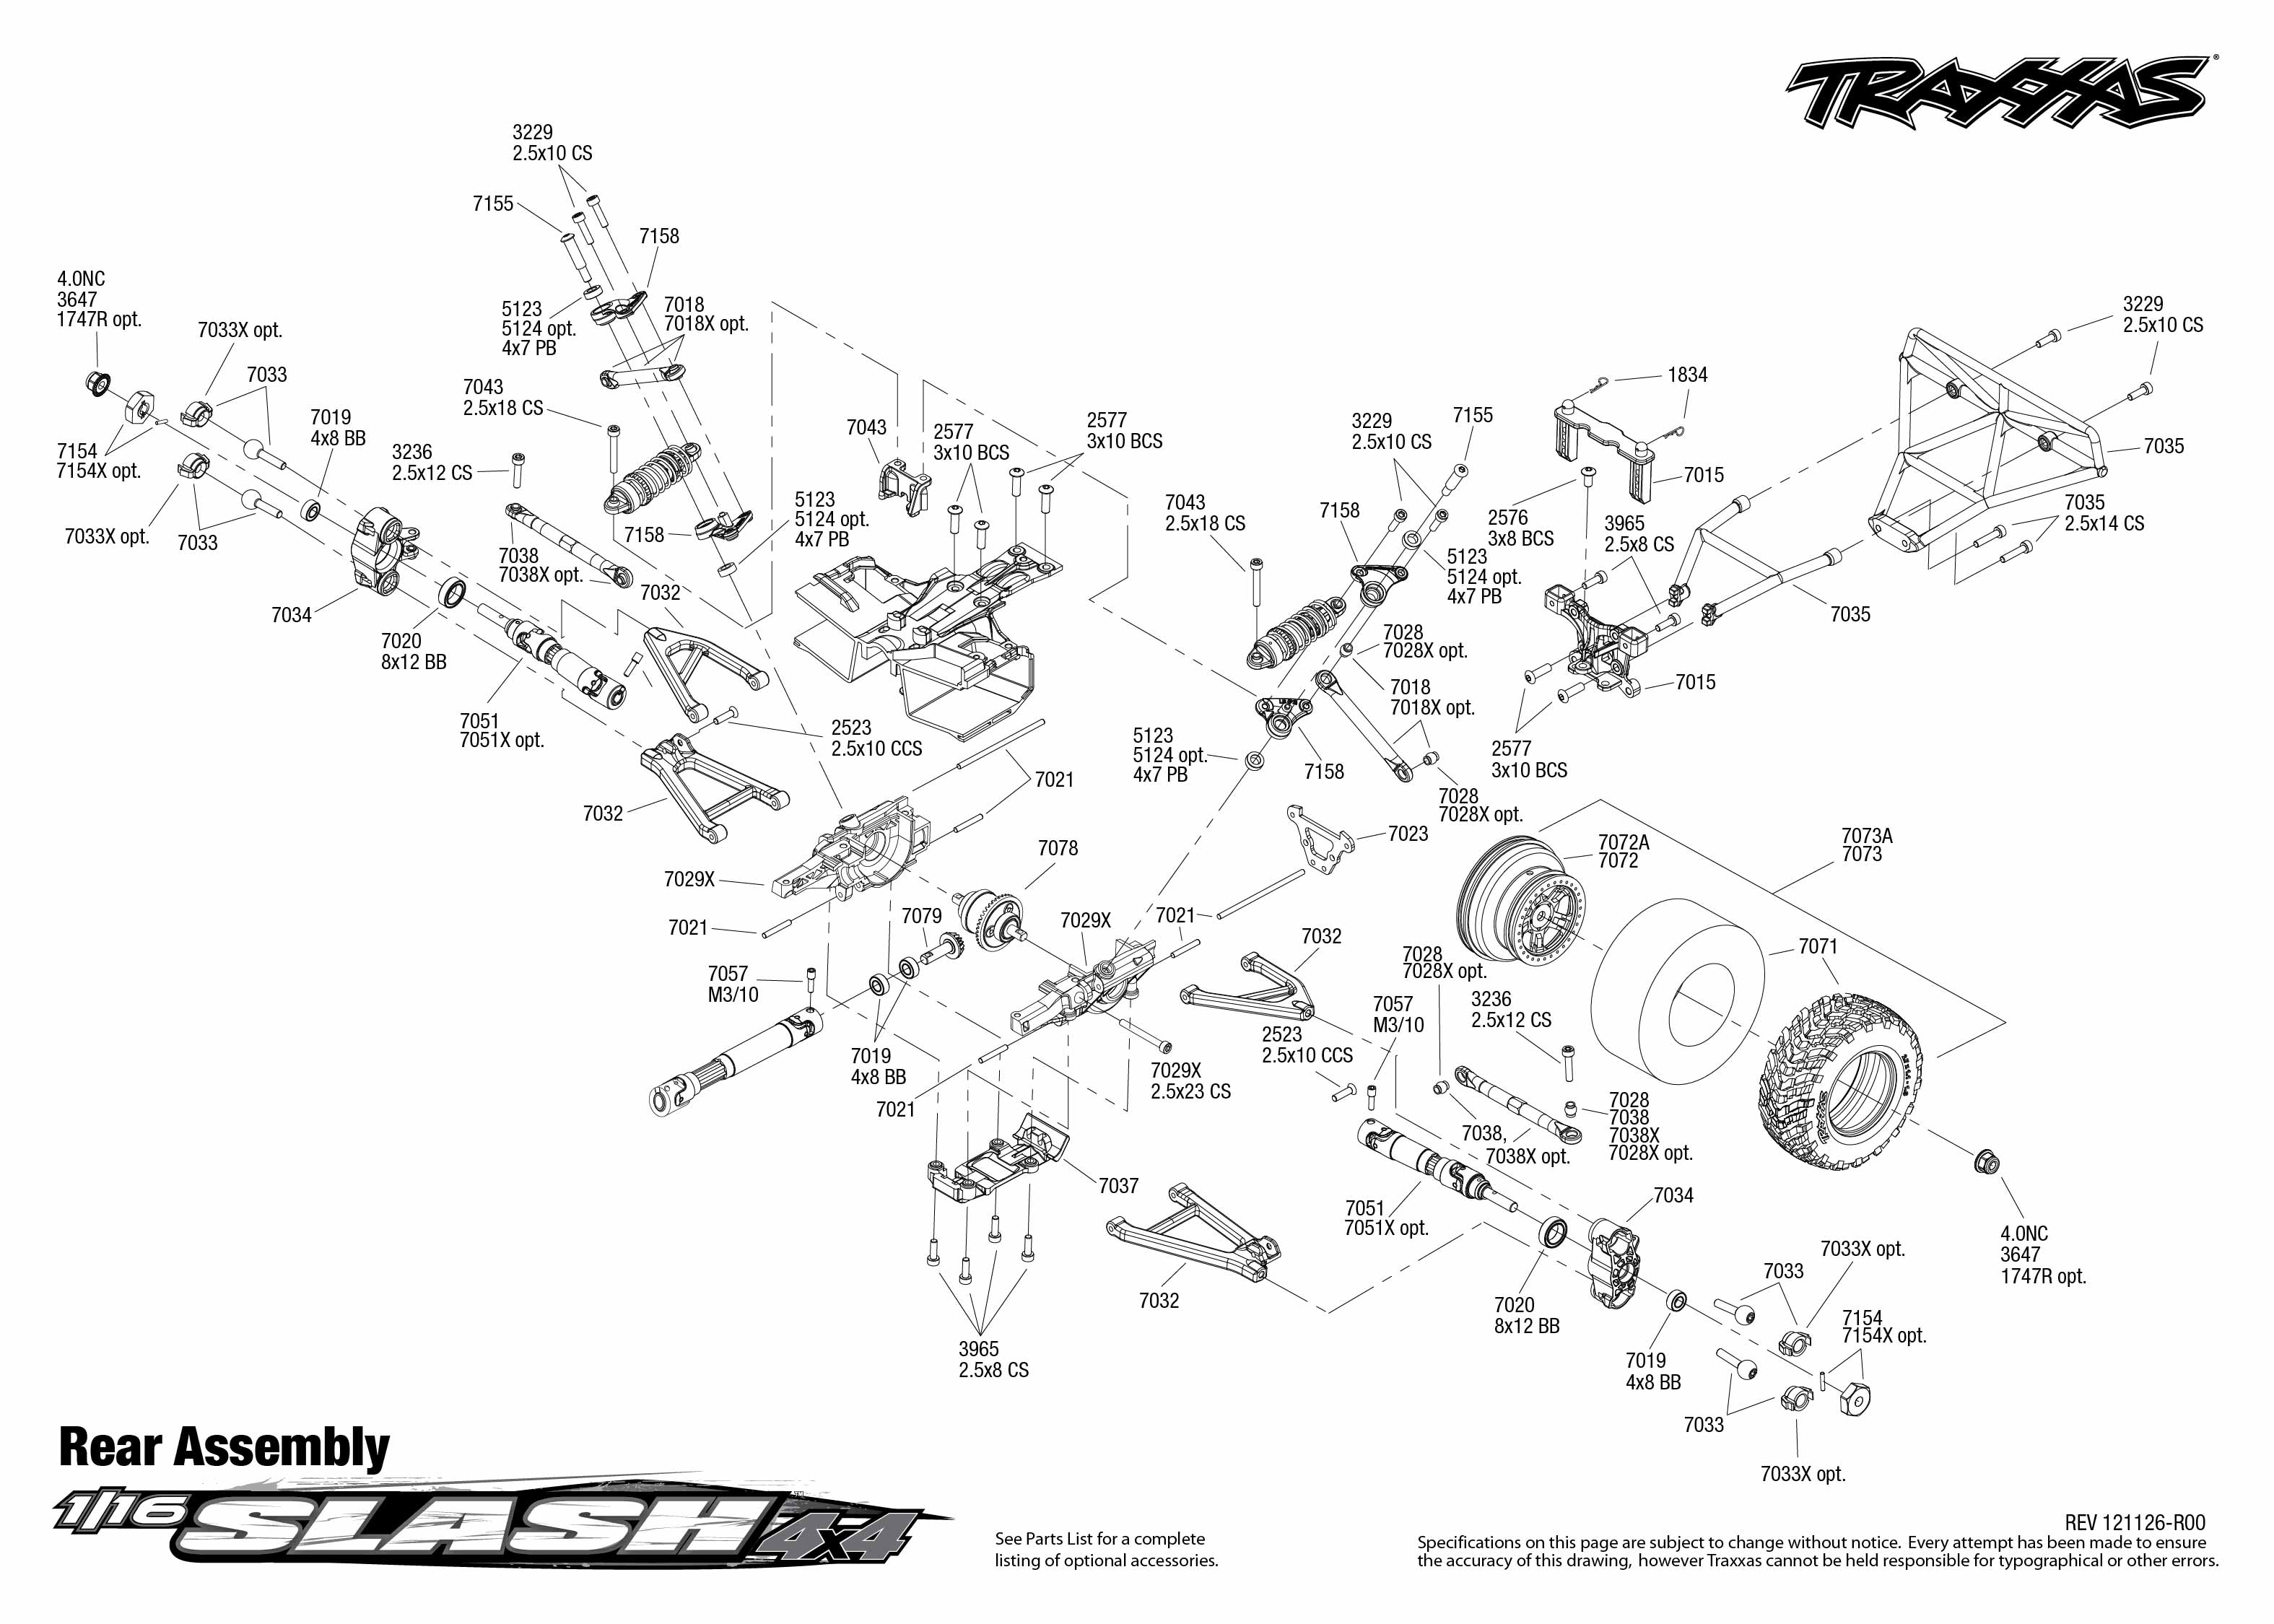 Traxxas 1/16 Scale Pro Slash 4X4 4WD Short Course Truck w